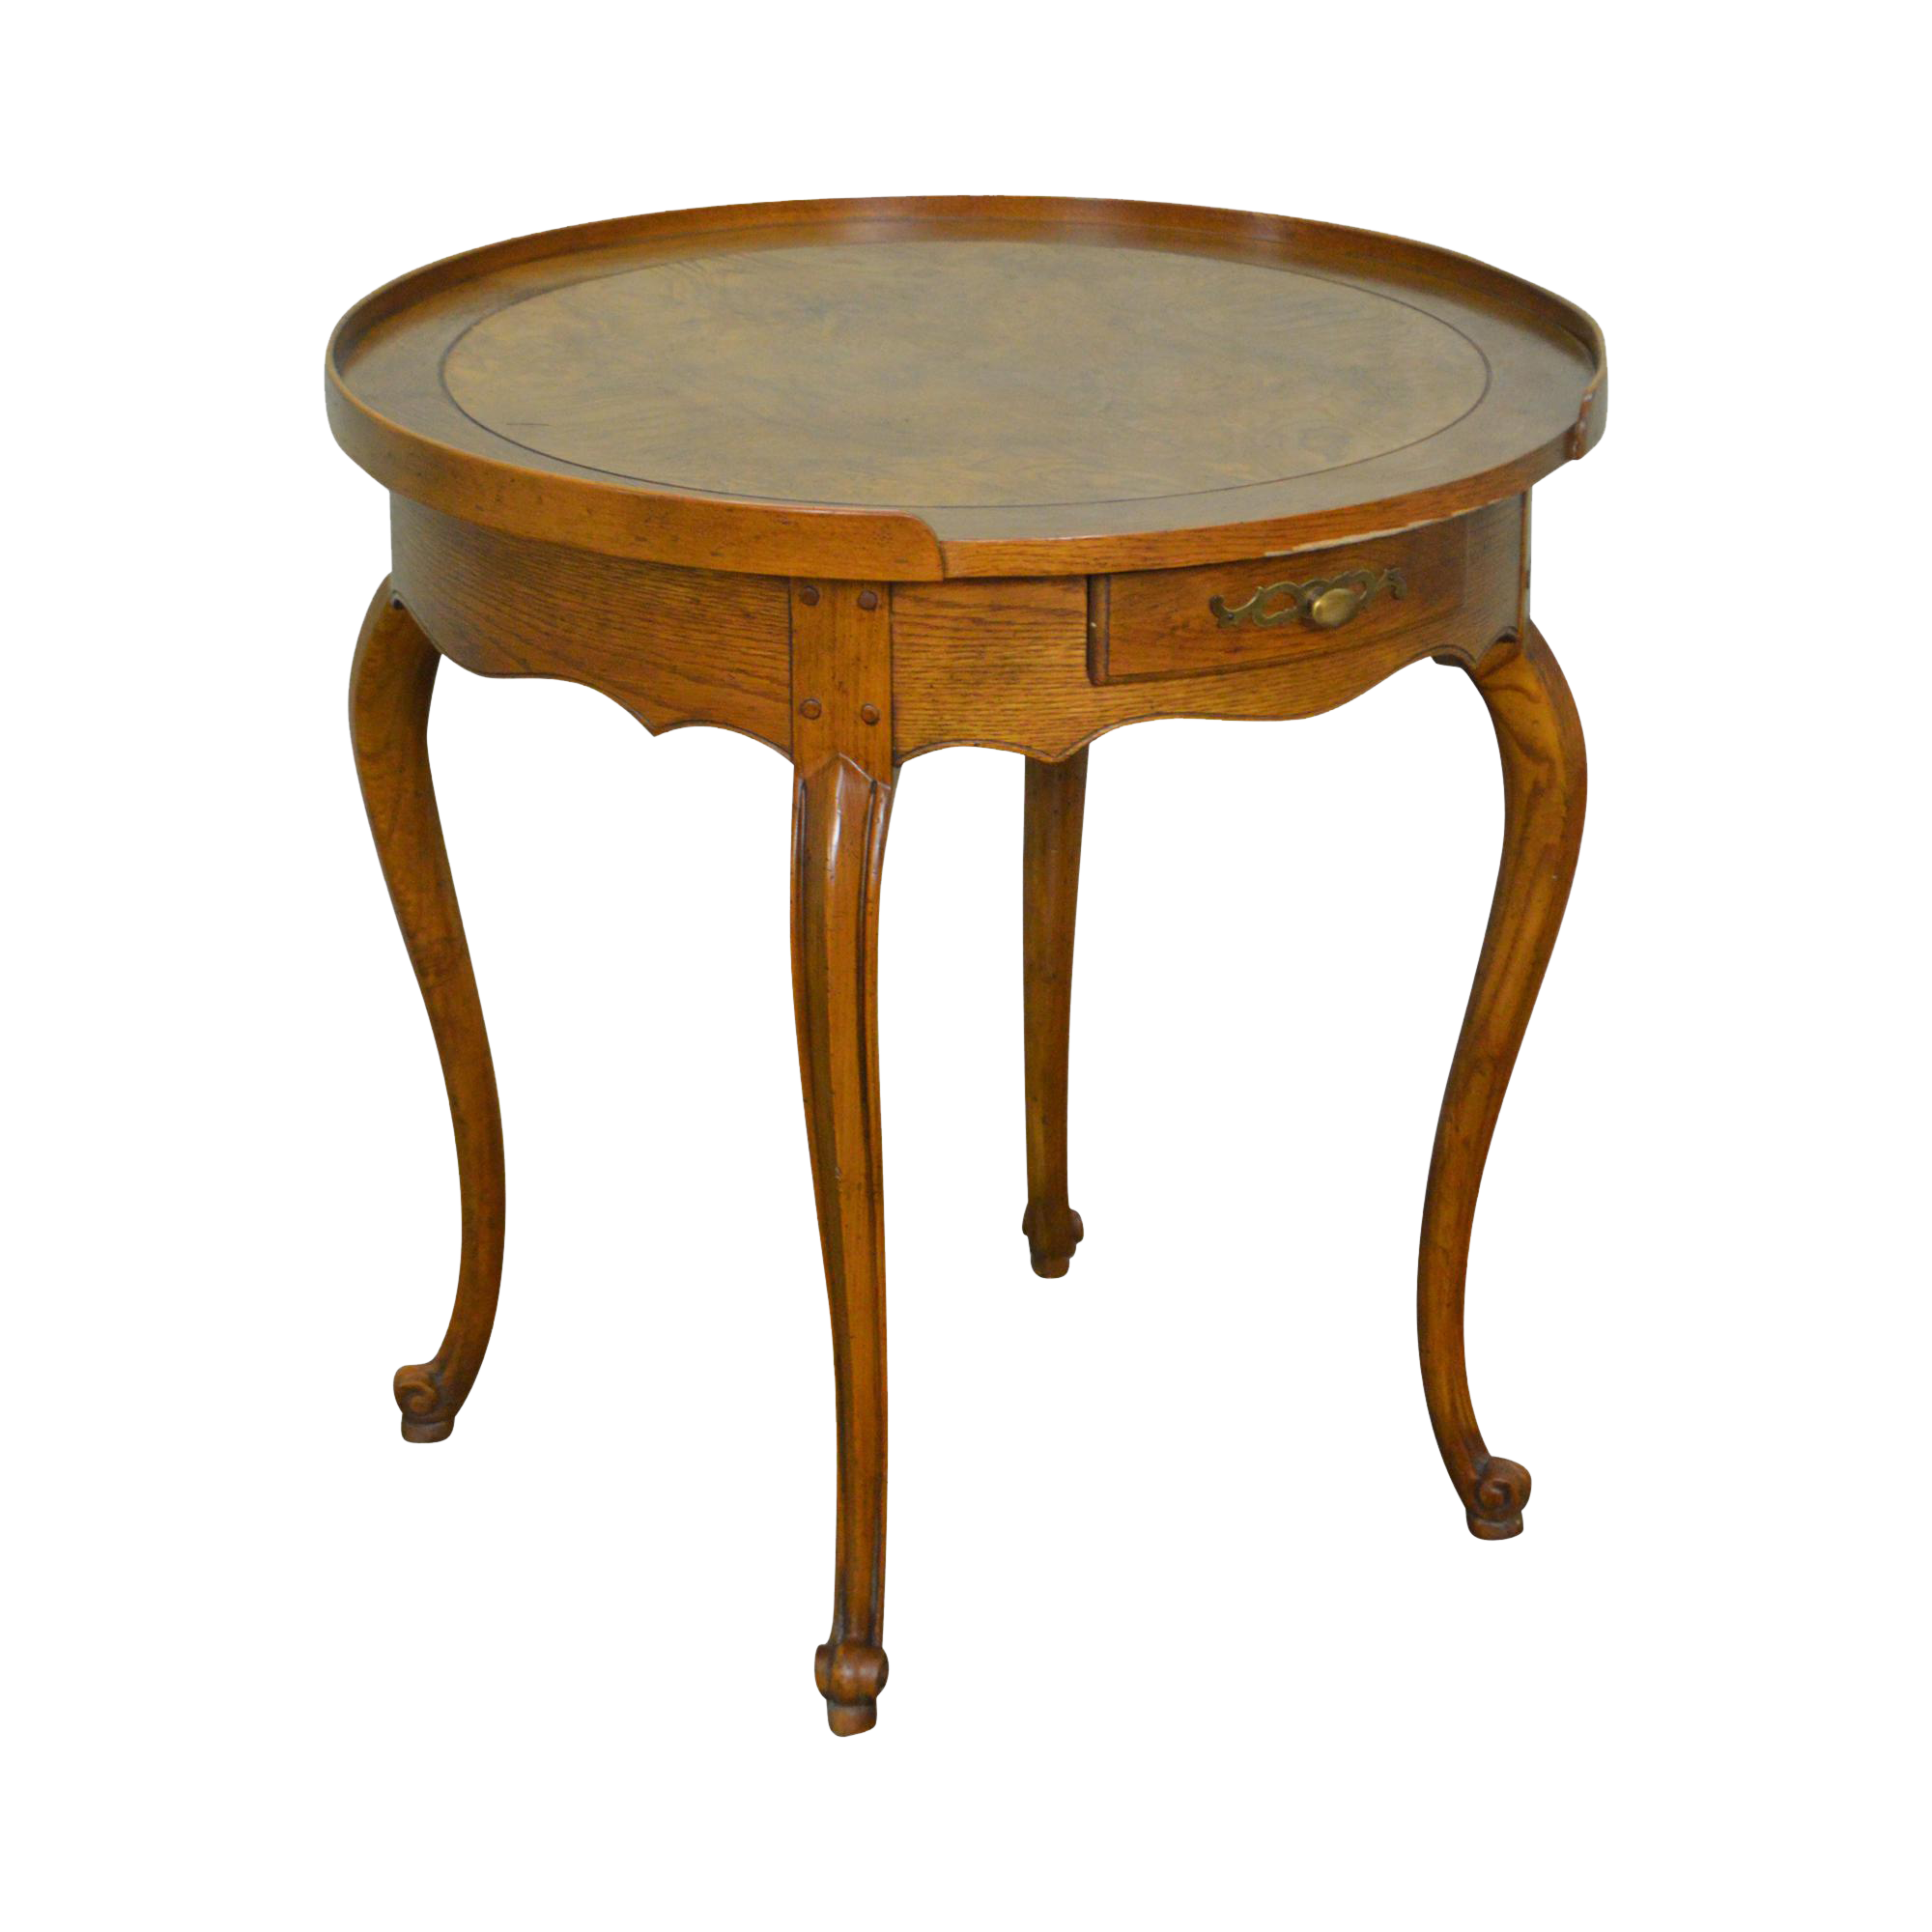 Baker French Louis XV Style Burl Wood Round Top 1 Drawer Side Table